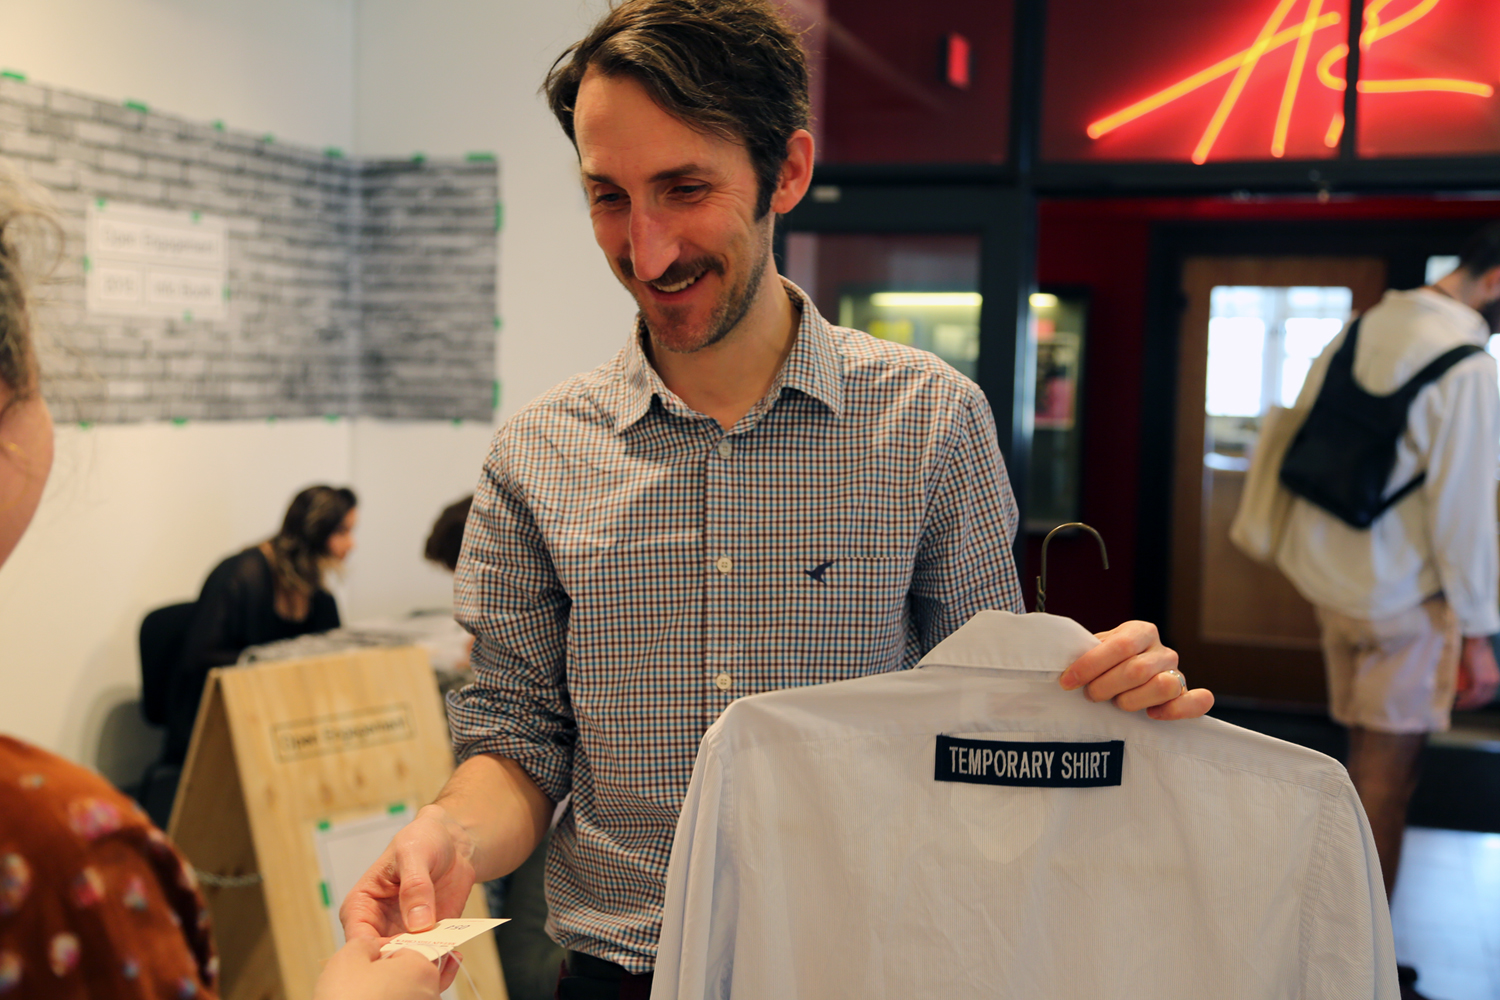 Participants are offered a temporary shirt to wear whilst their garment is being worked on